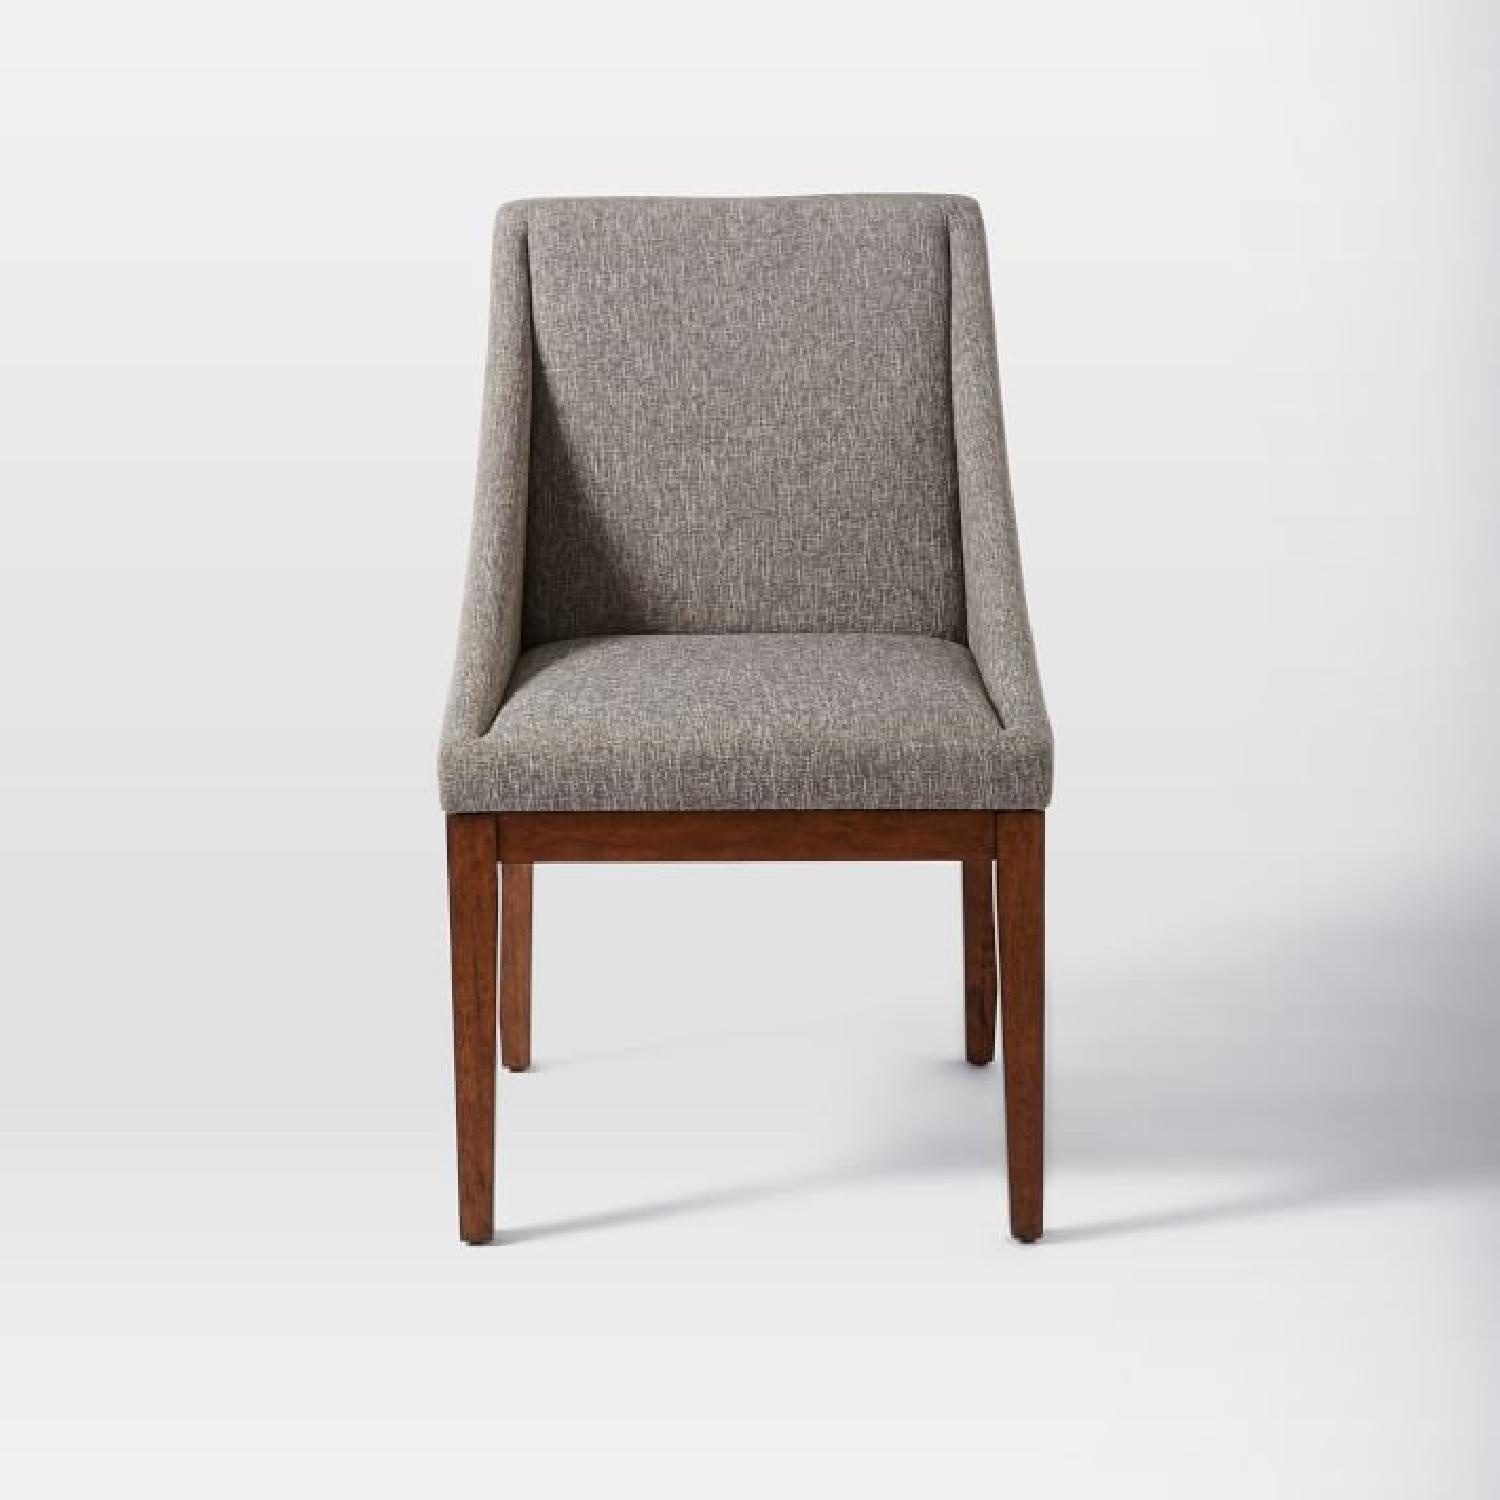 West Elm Curved Upholstered Chairs - image-4